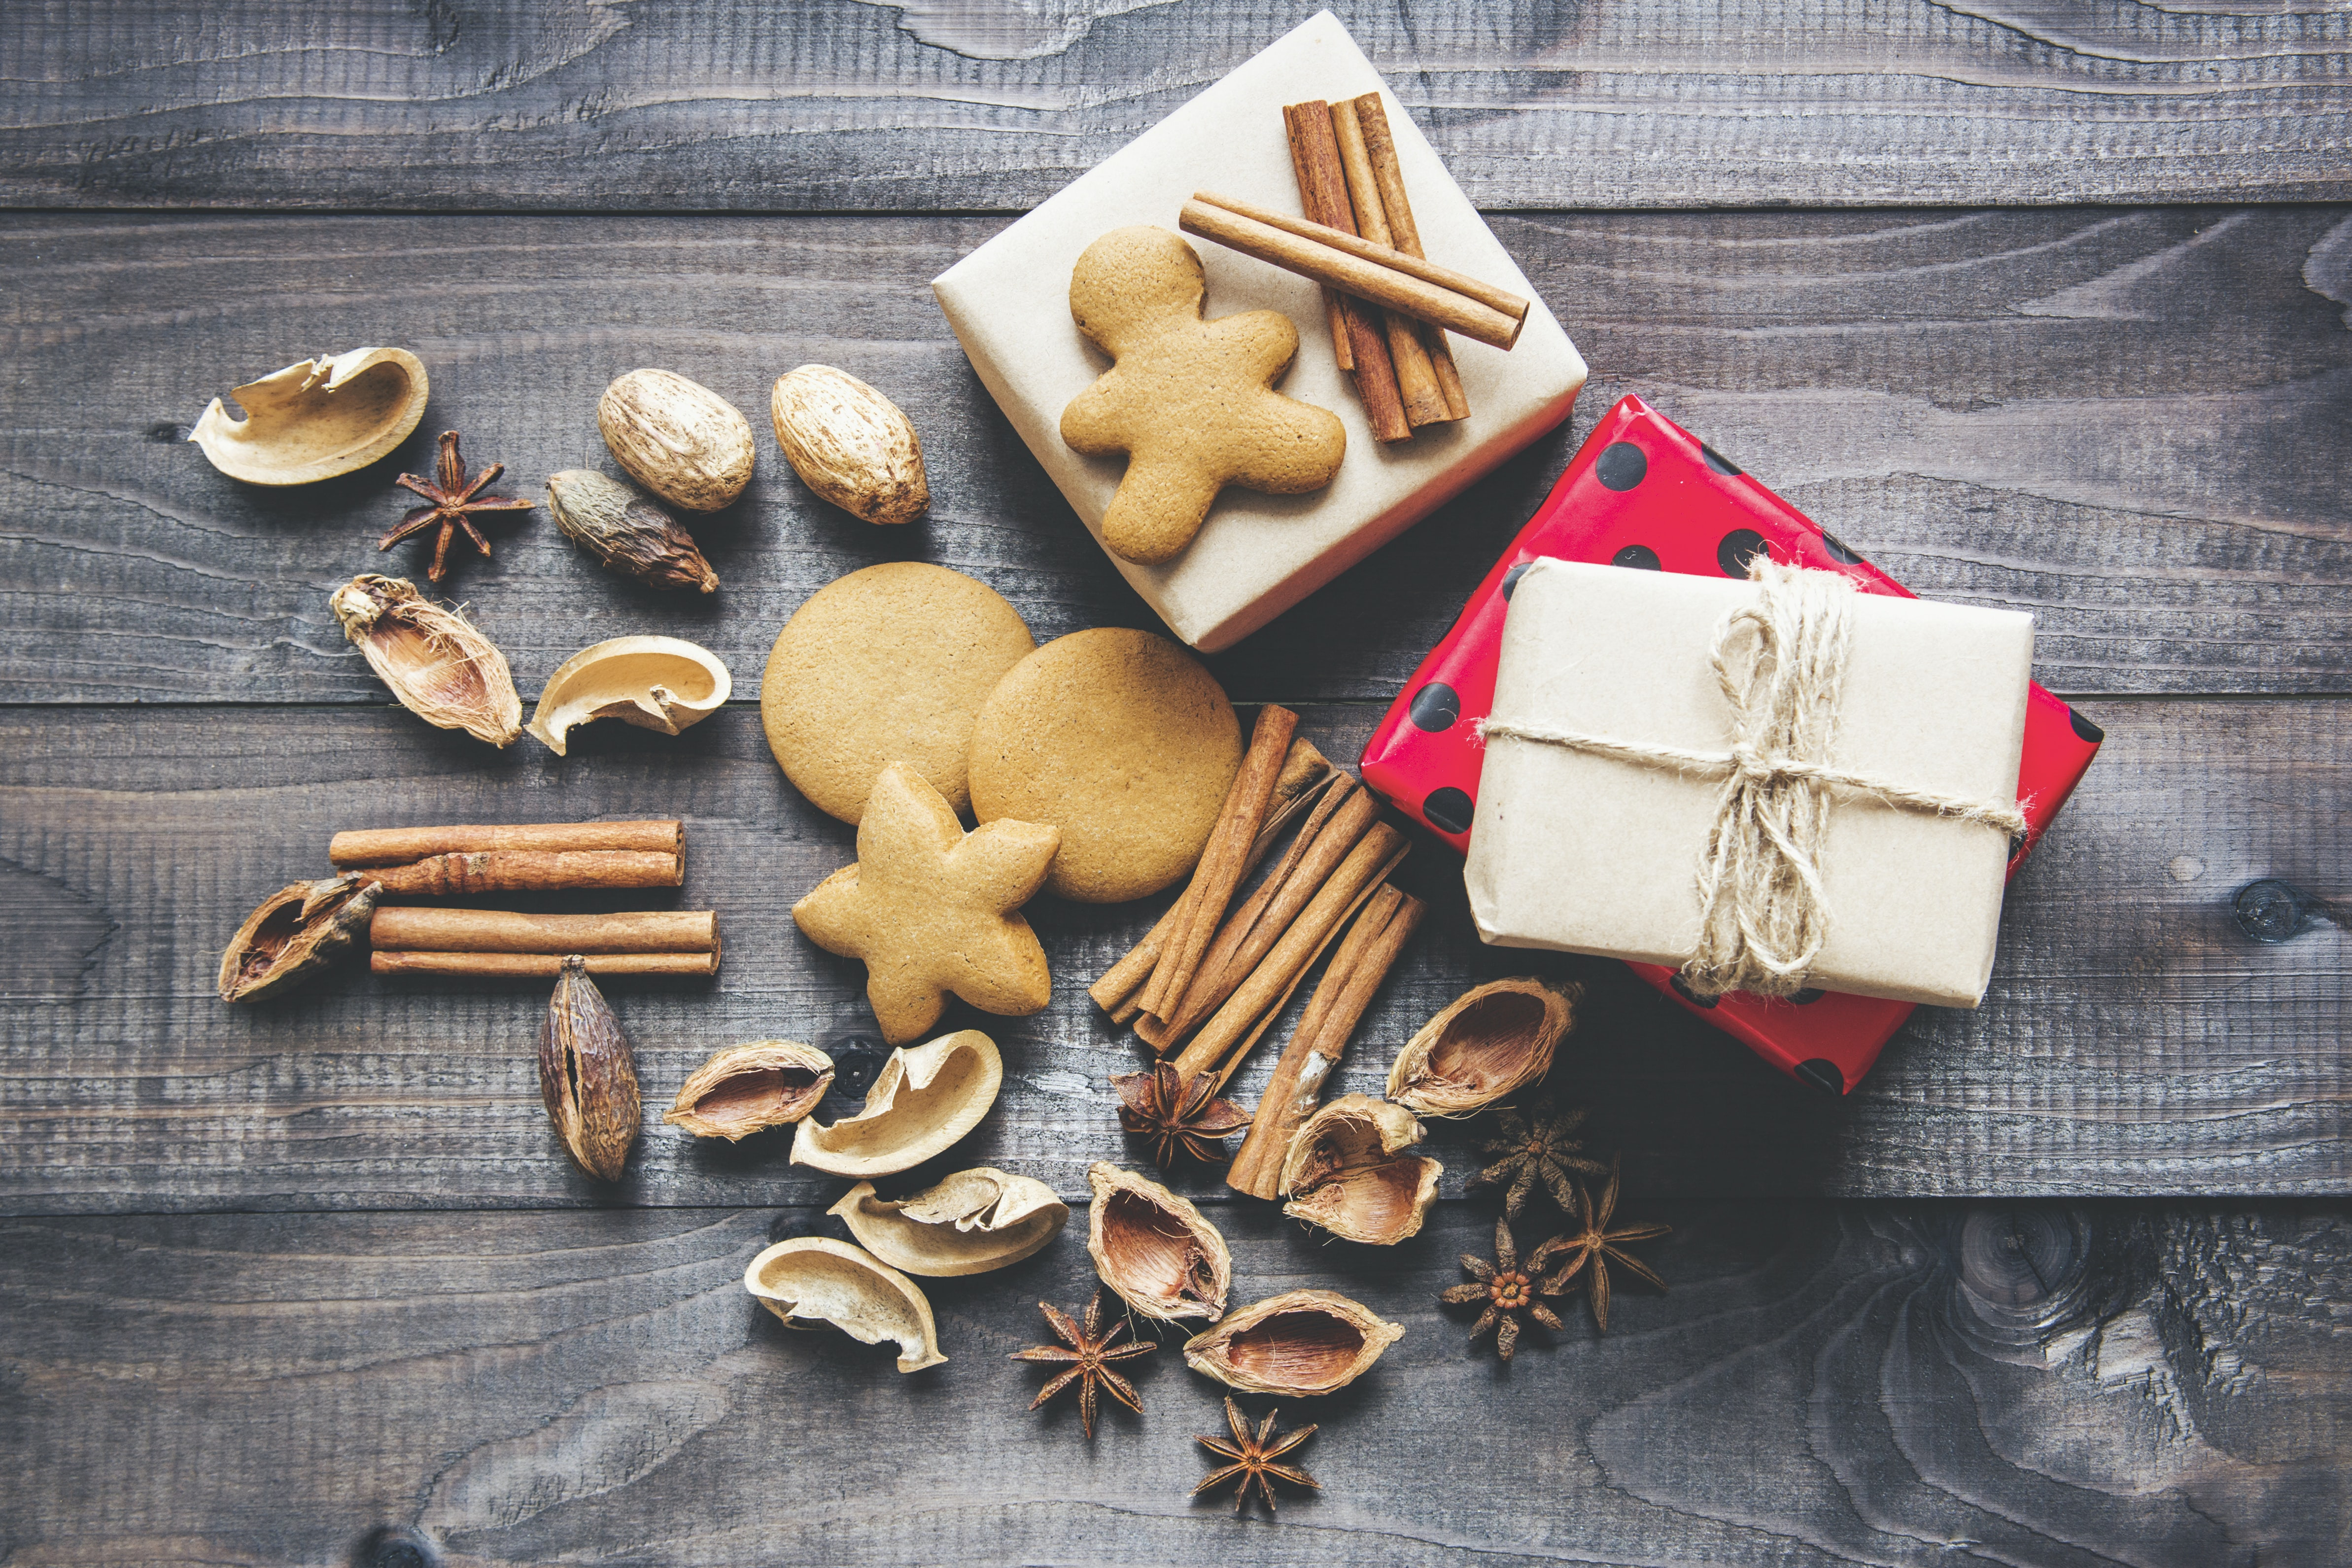 The Ultimate Foodie's Gift Guide for 2018